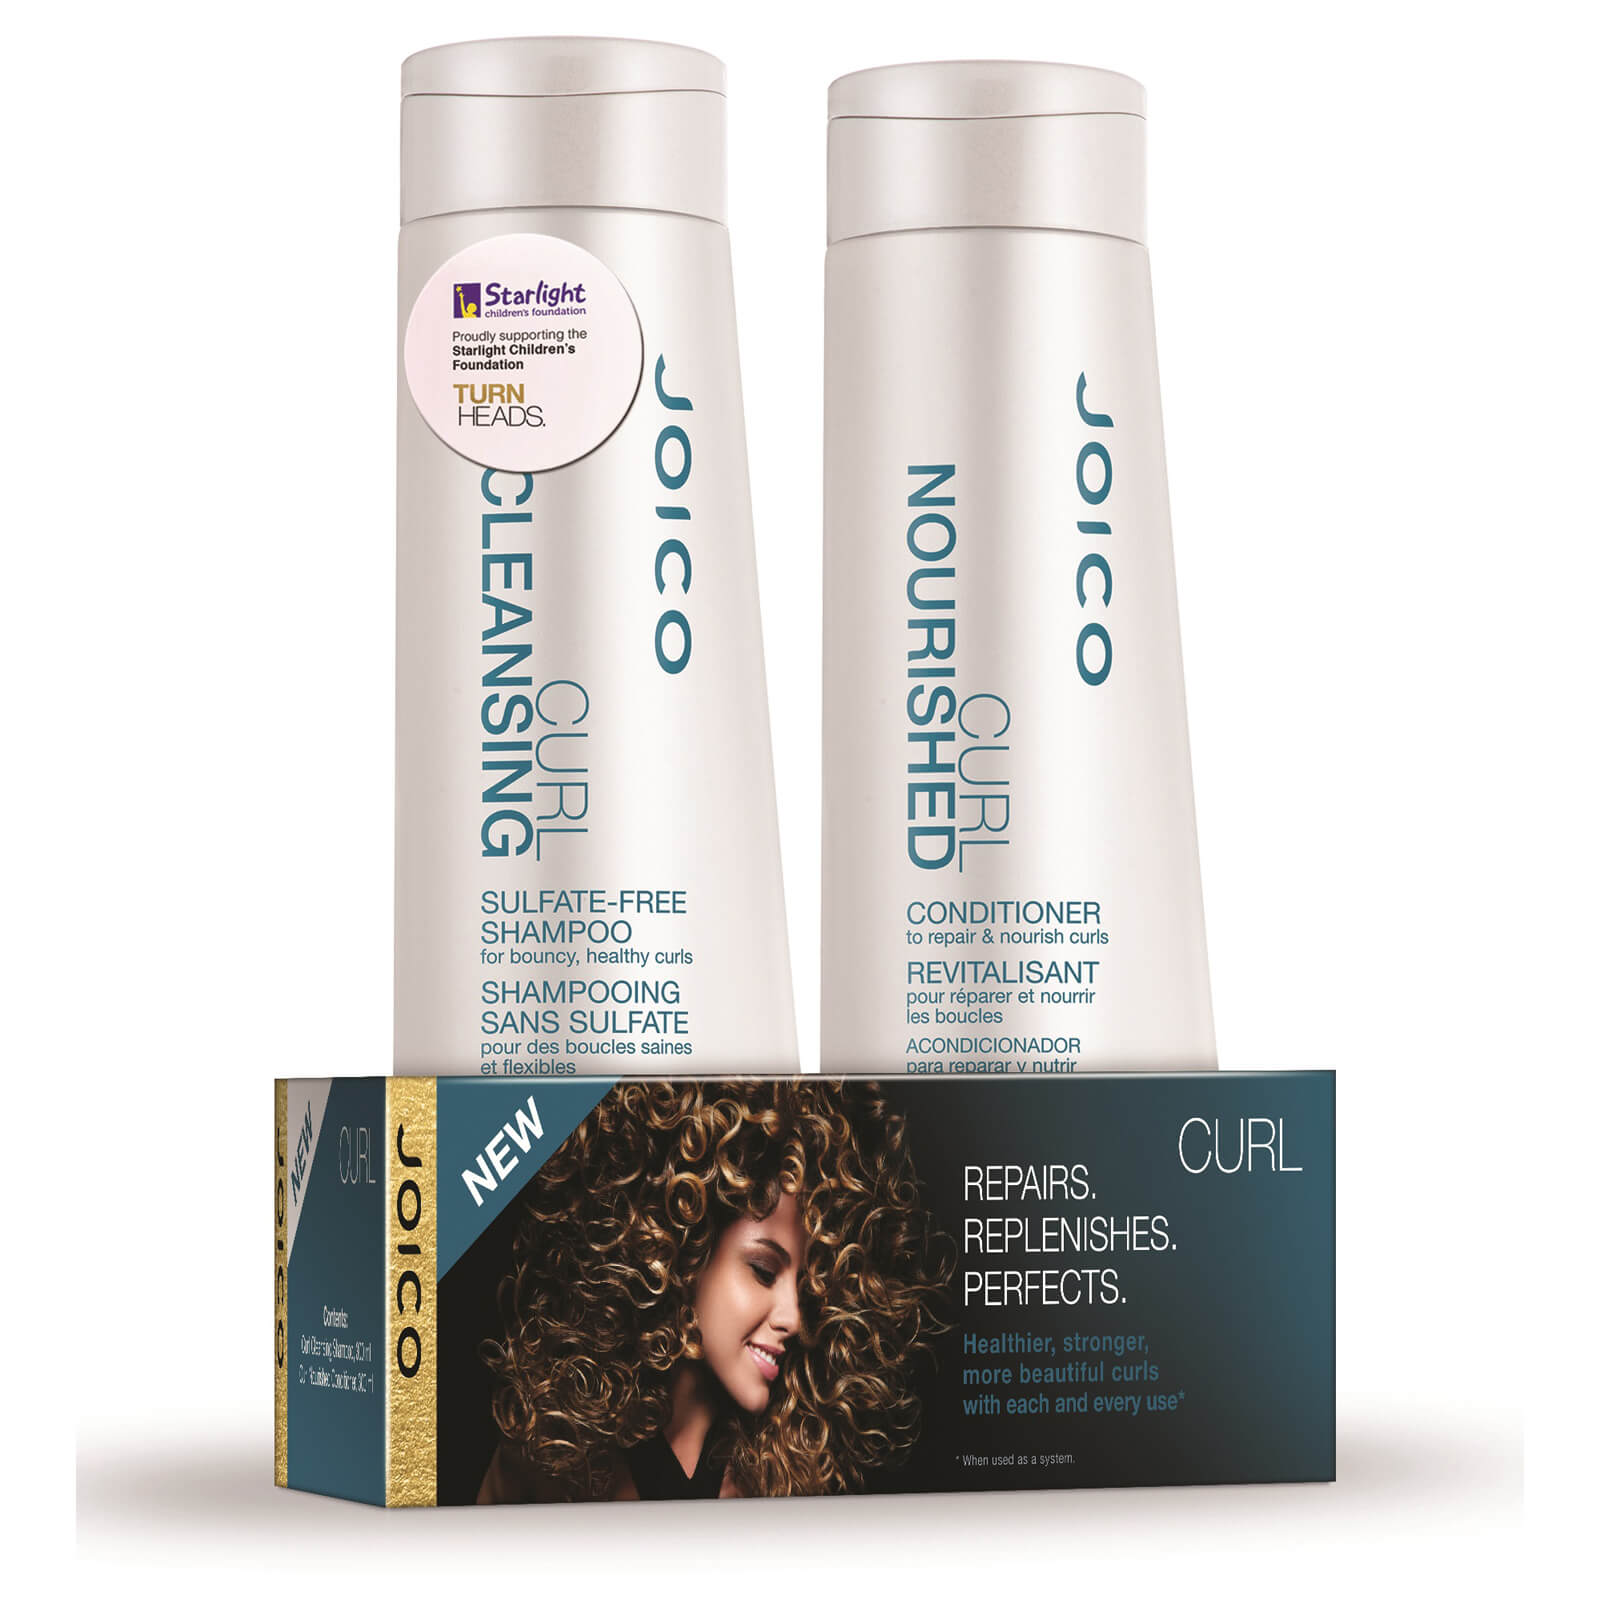 Joico Curl Shampoo And Conditioner Duo Pack 2 x 300ml